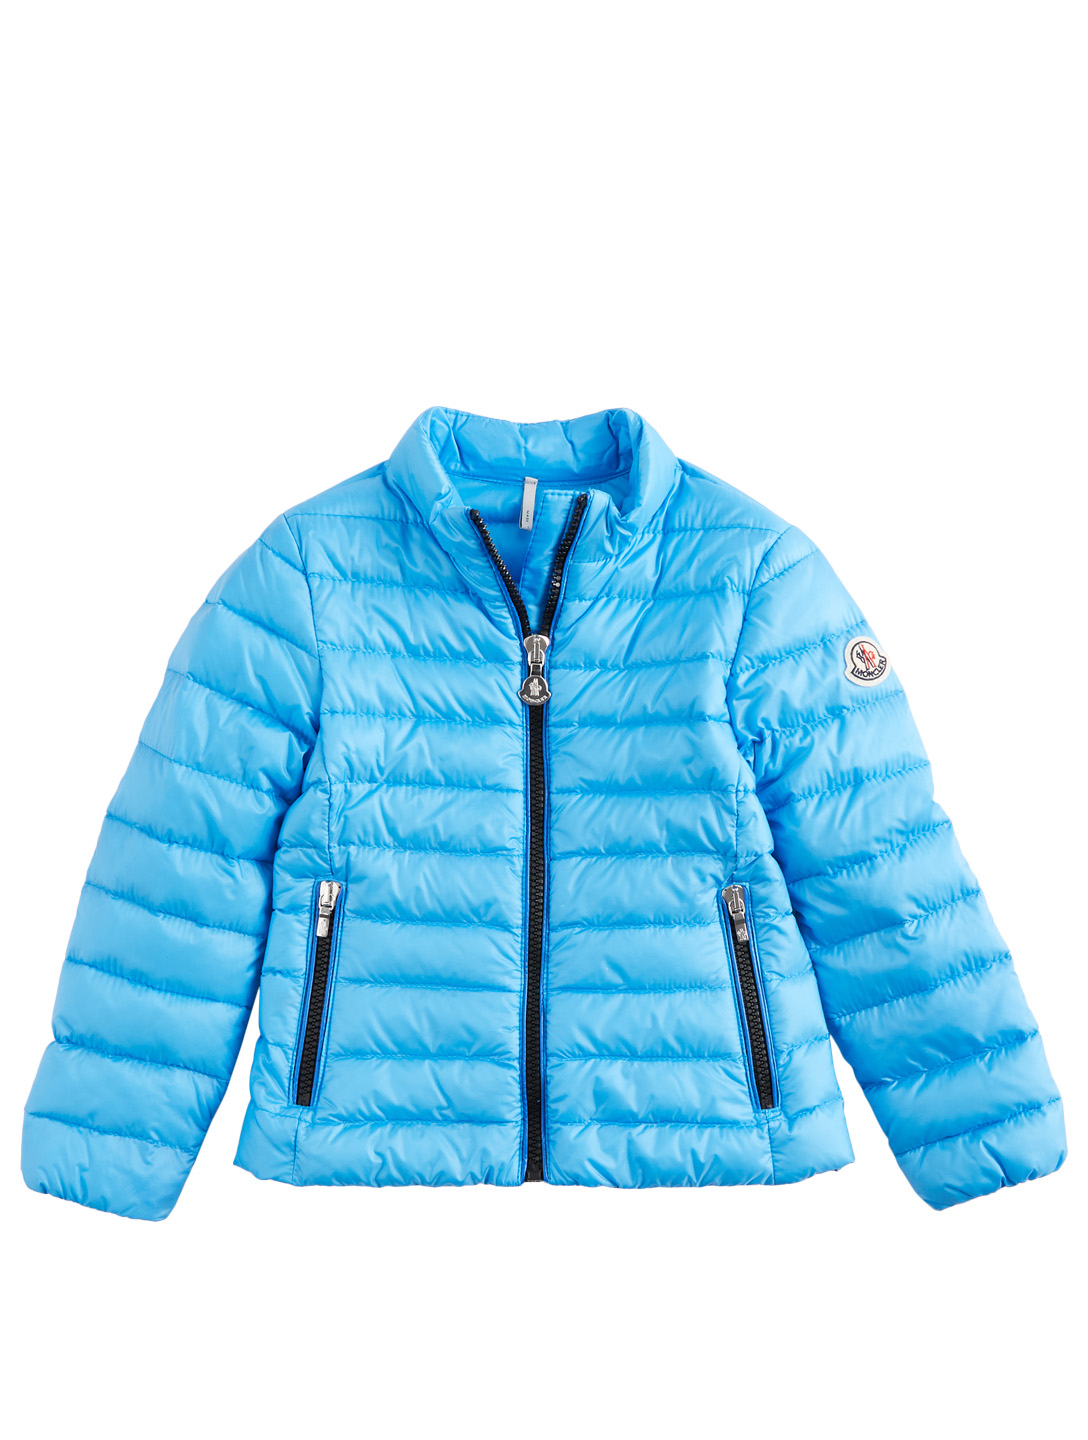 MONCLER ENFANT Girls Kaukura Down Puffer Jacket Kids Blue